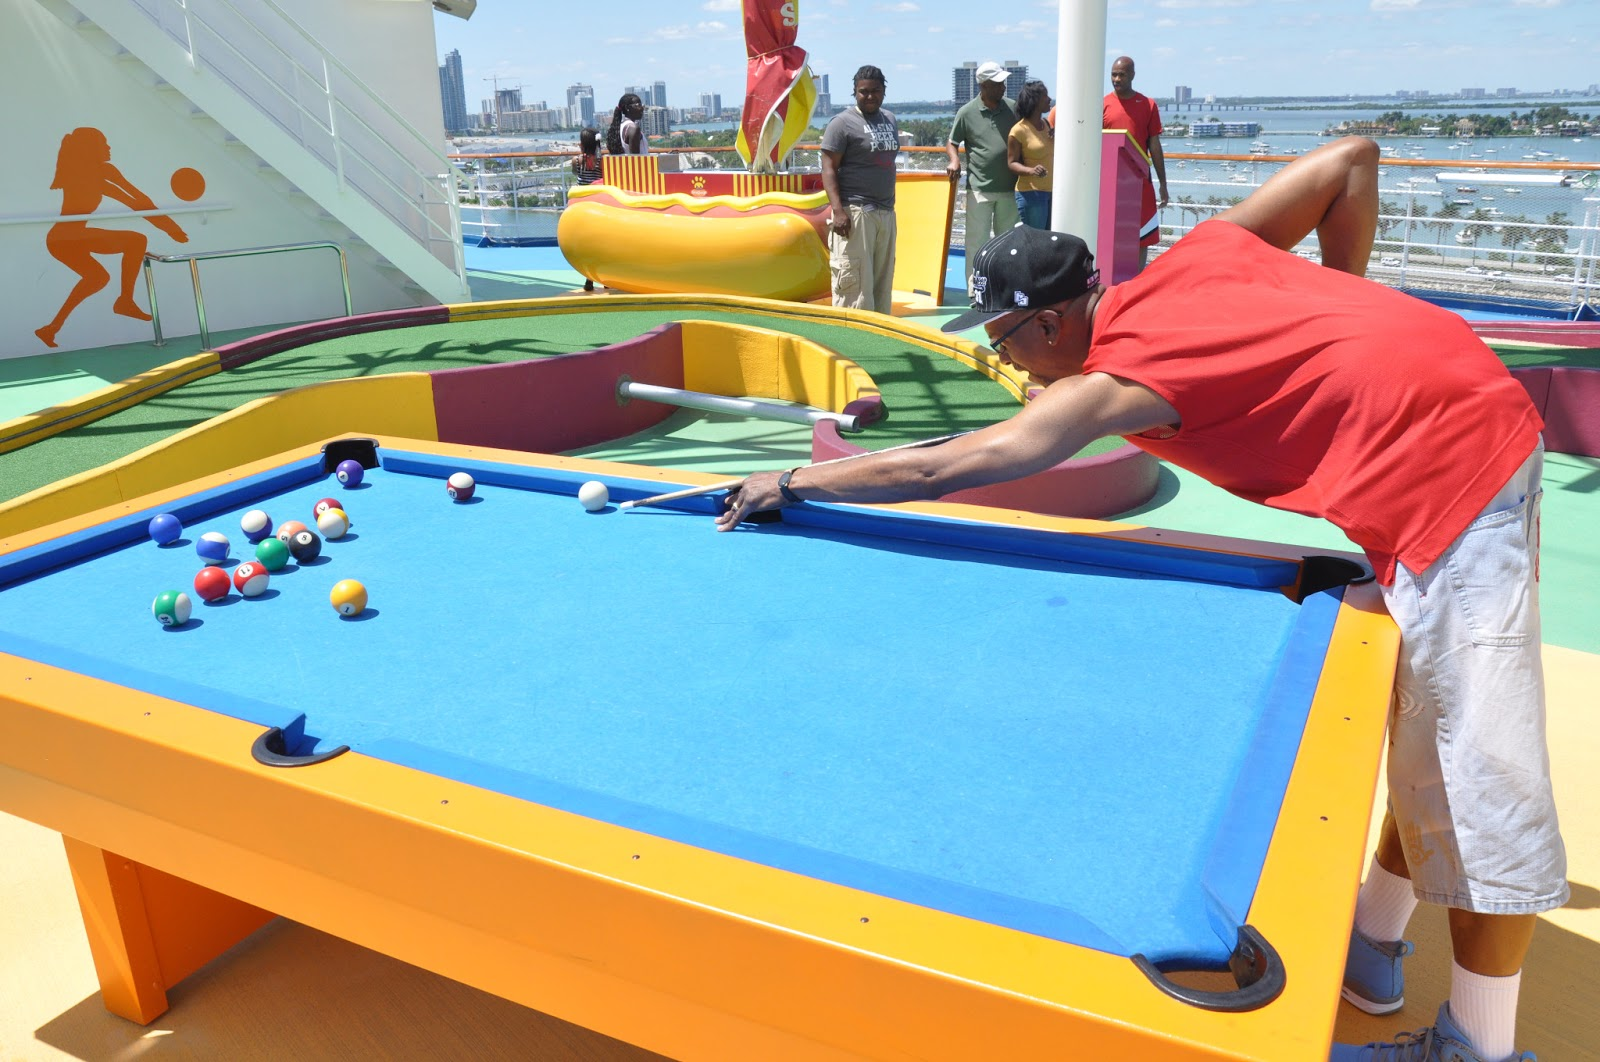 A GREAT EUROPE TRIP PLANNER: THE CARNIVAL BREEZE